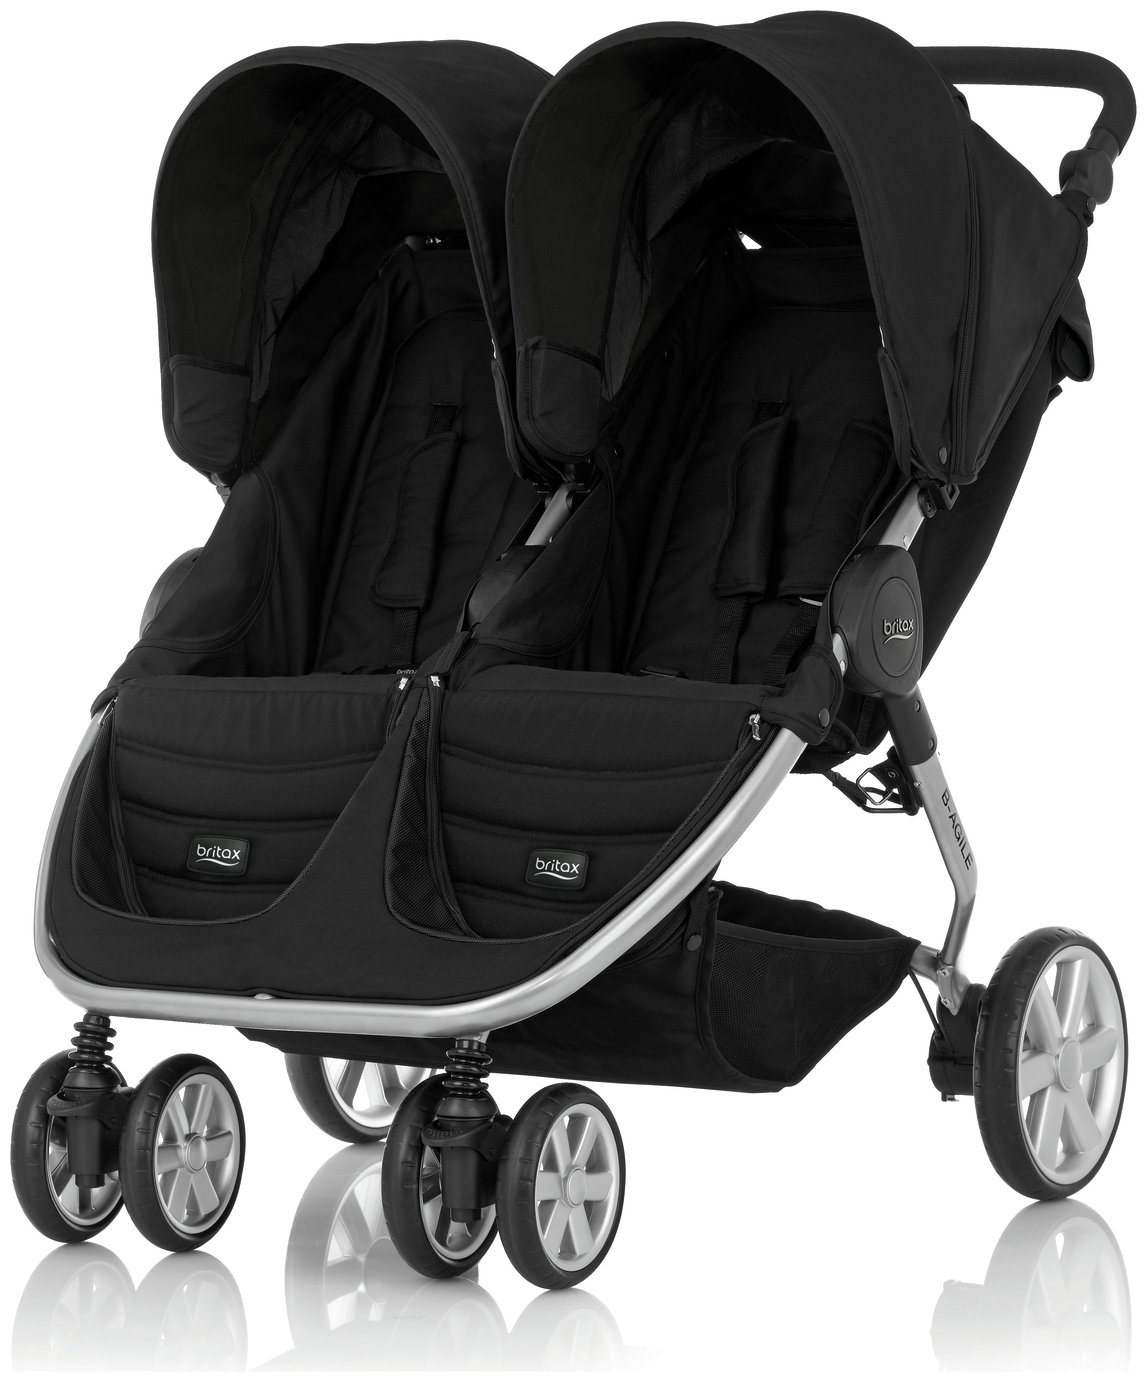 Image of Britax Romer B-AGILE DOUBLE Pushchair ??? Cosmos Black